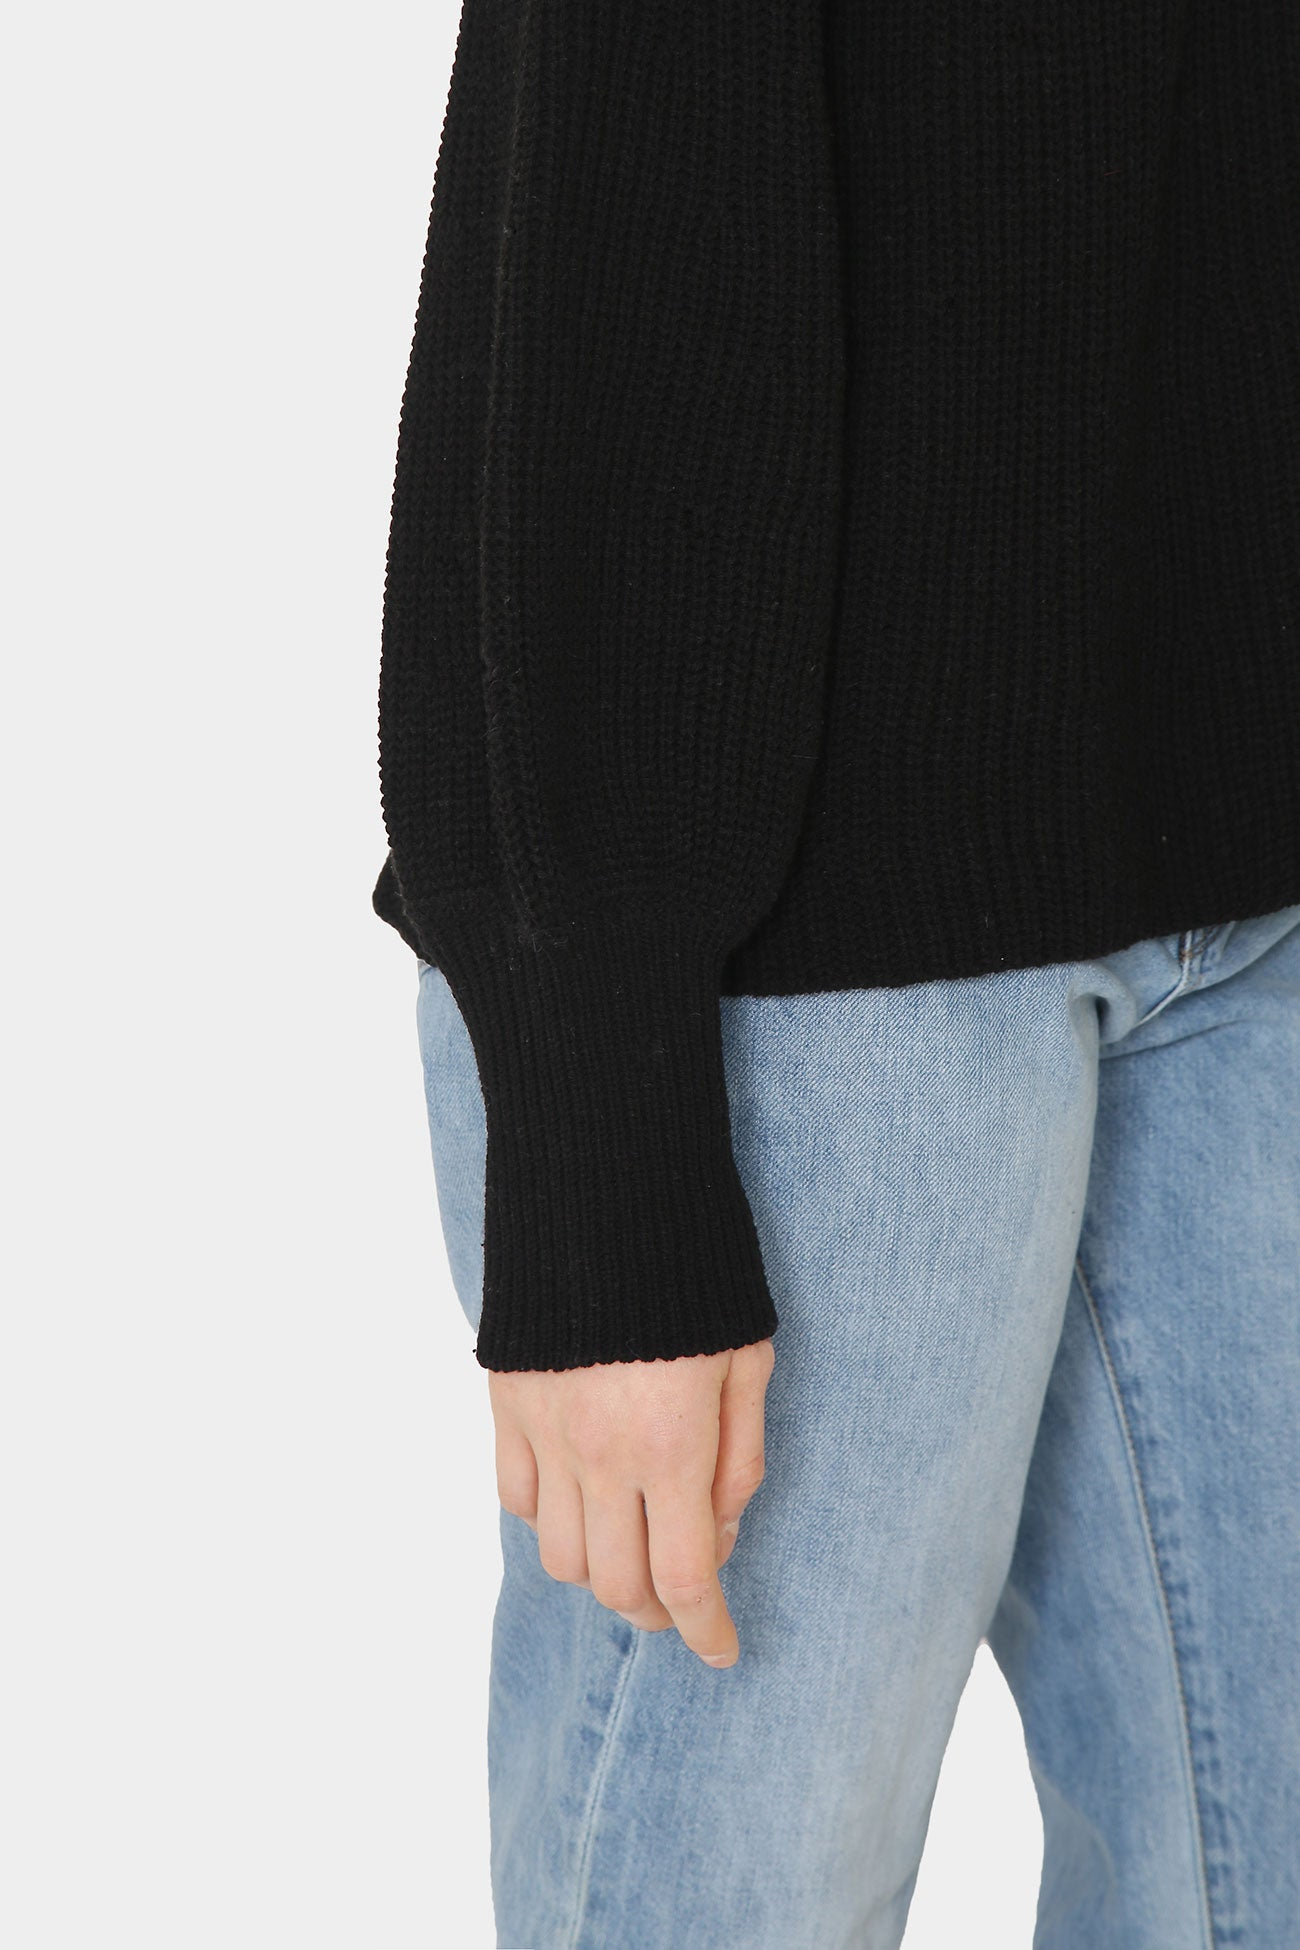 BLACK LOLA COTTON POET SLEEVE SWEATER